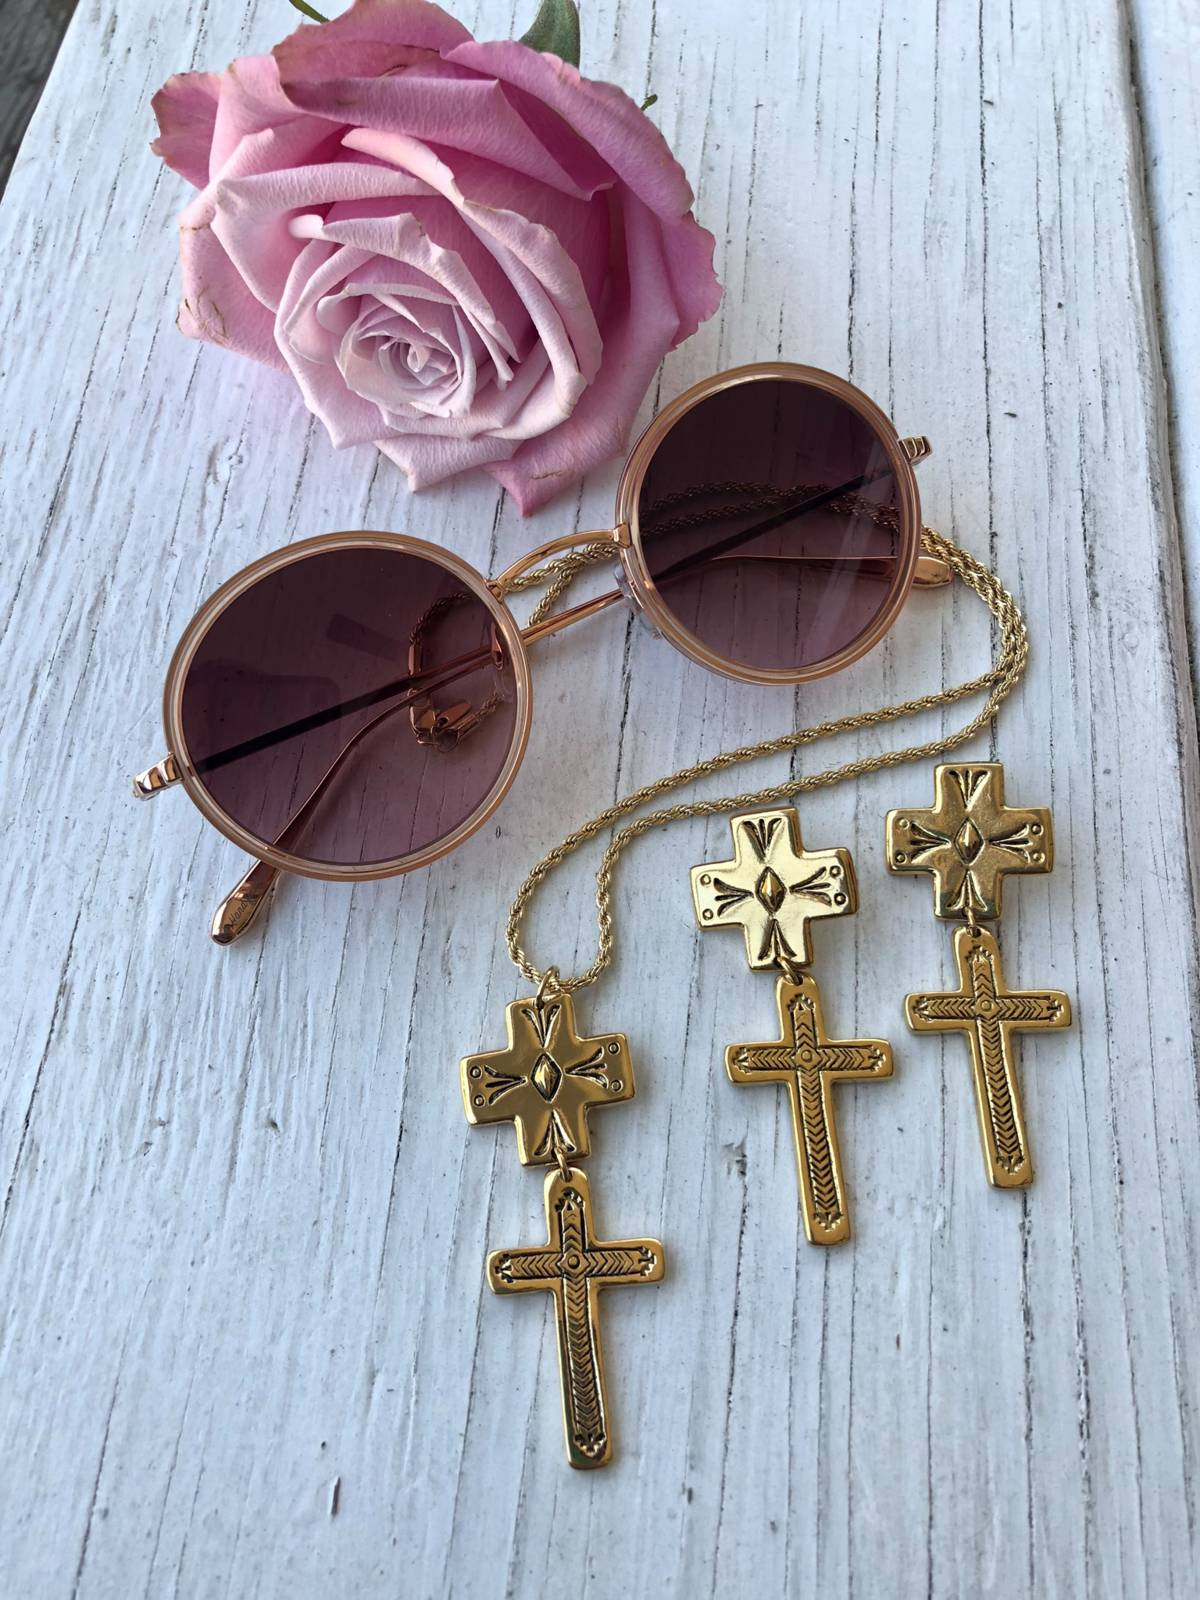 The Double Cross Earrings